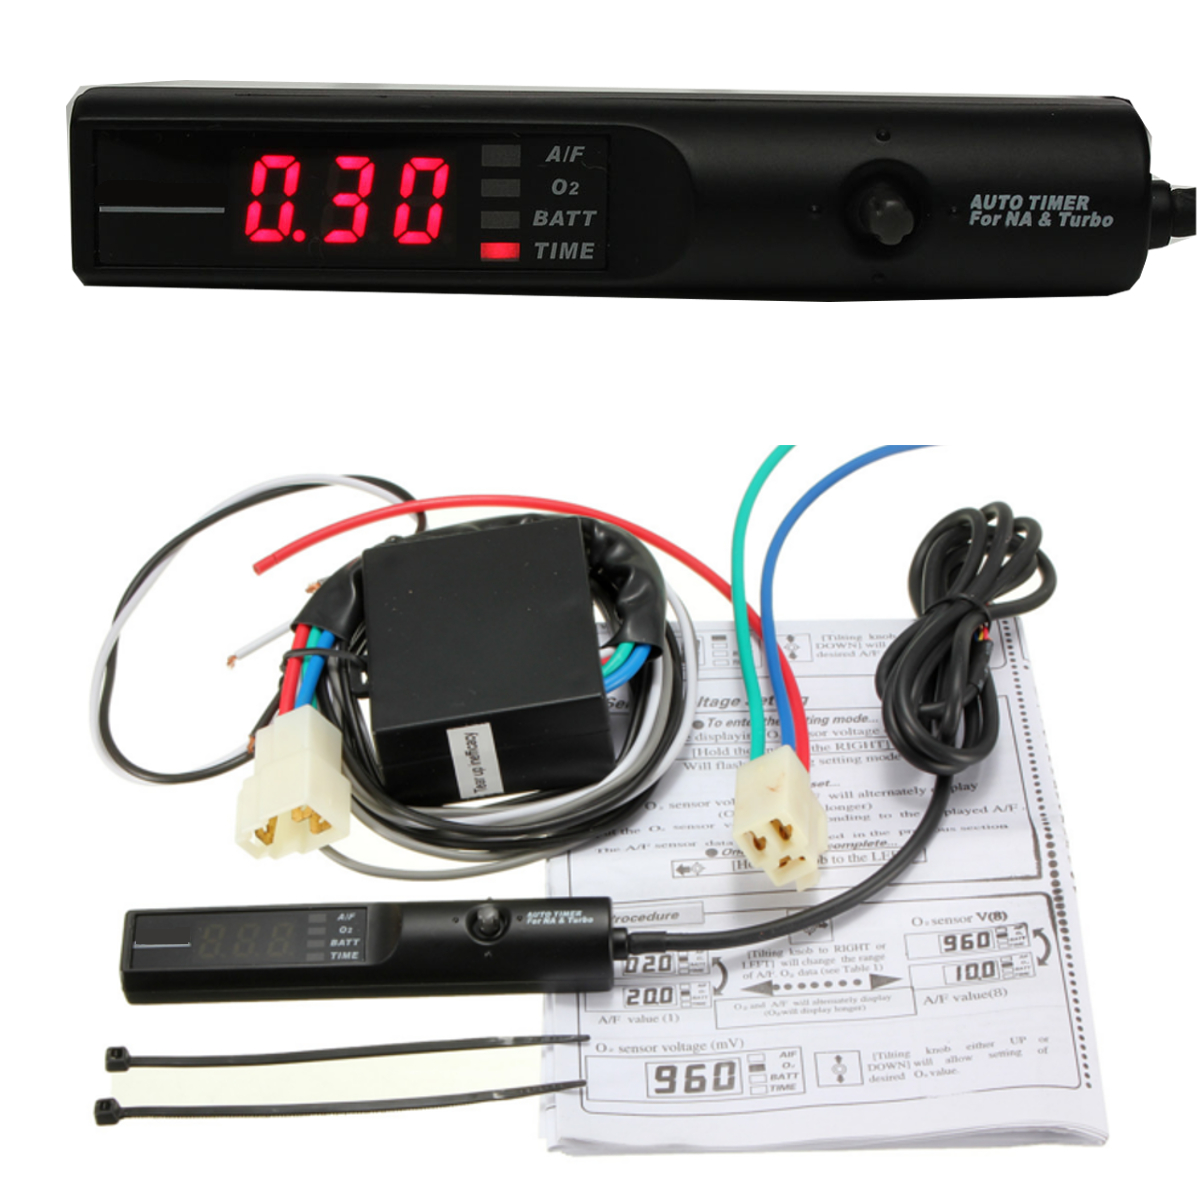 Turbo Timer Control Unit Luminous Digit LED A/F O₂ Batt Time For Apexi